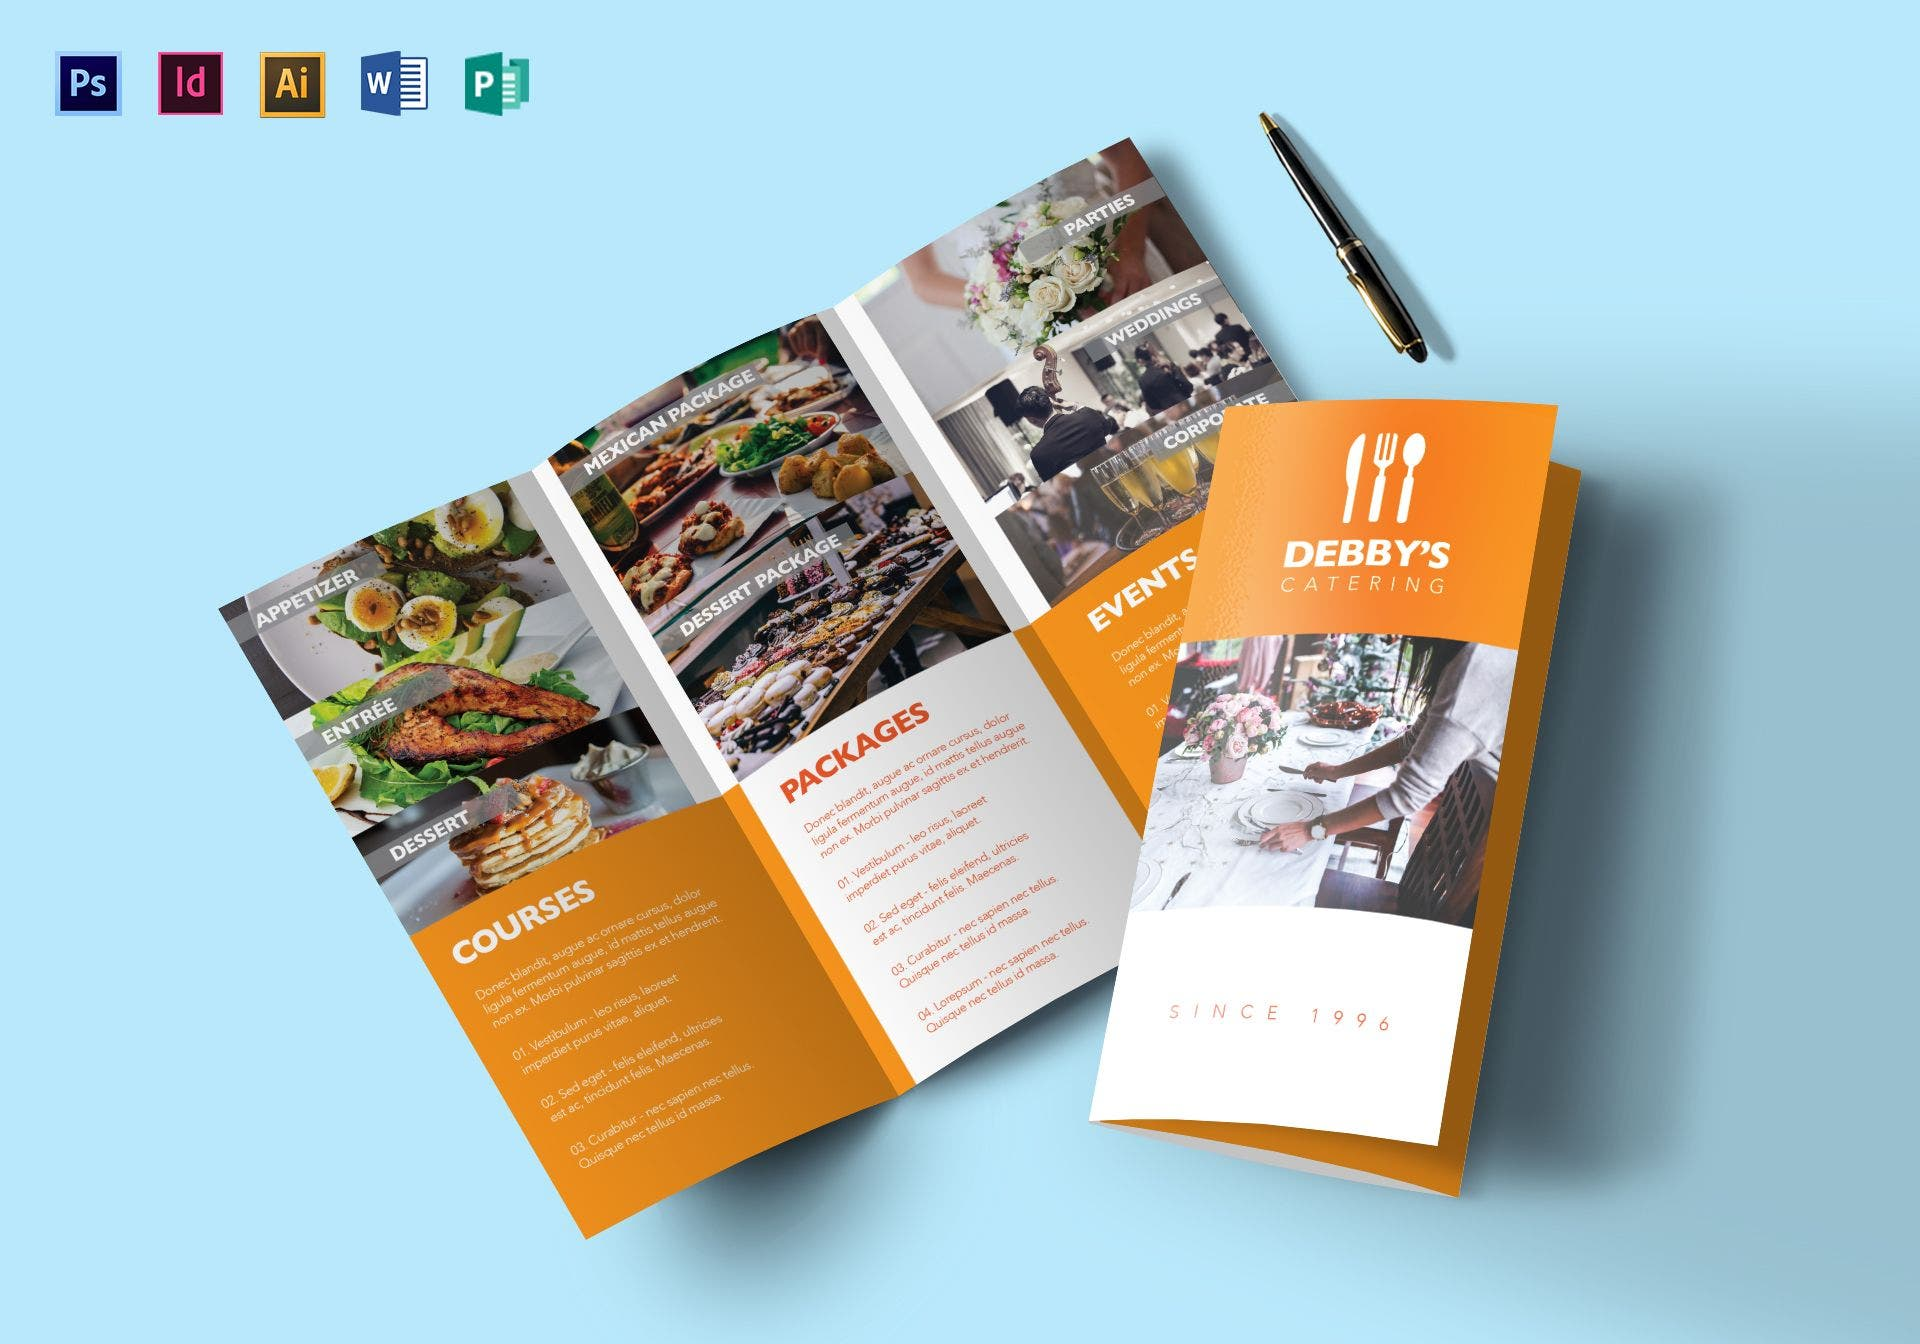 debby catering service brochure template